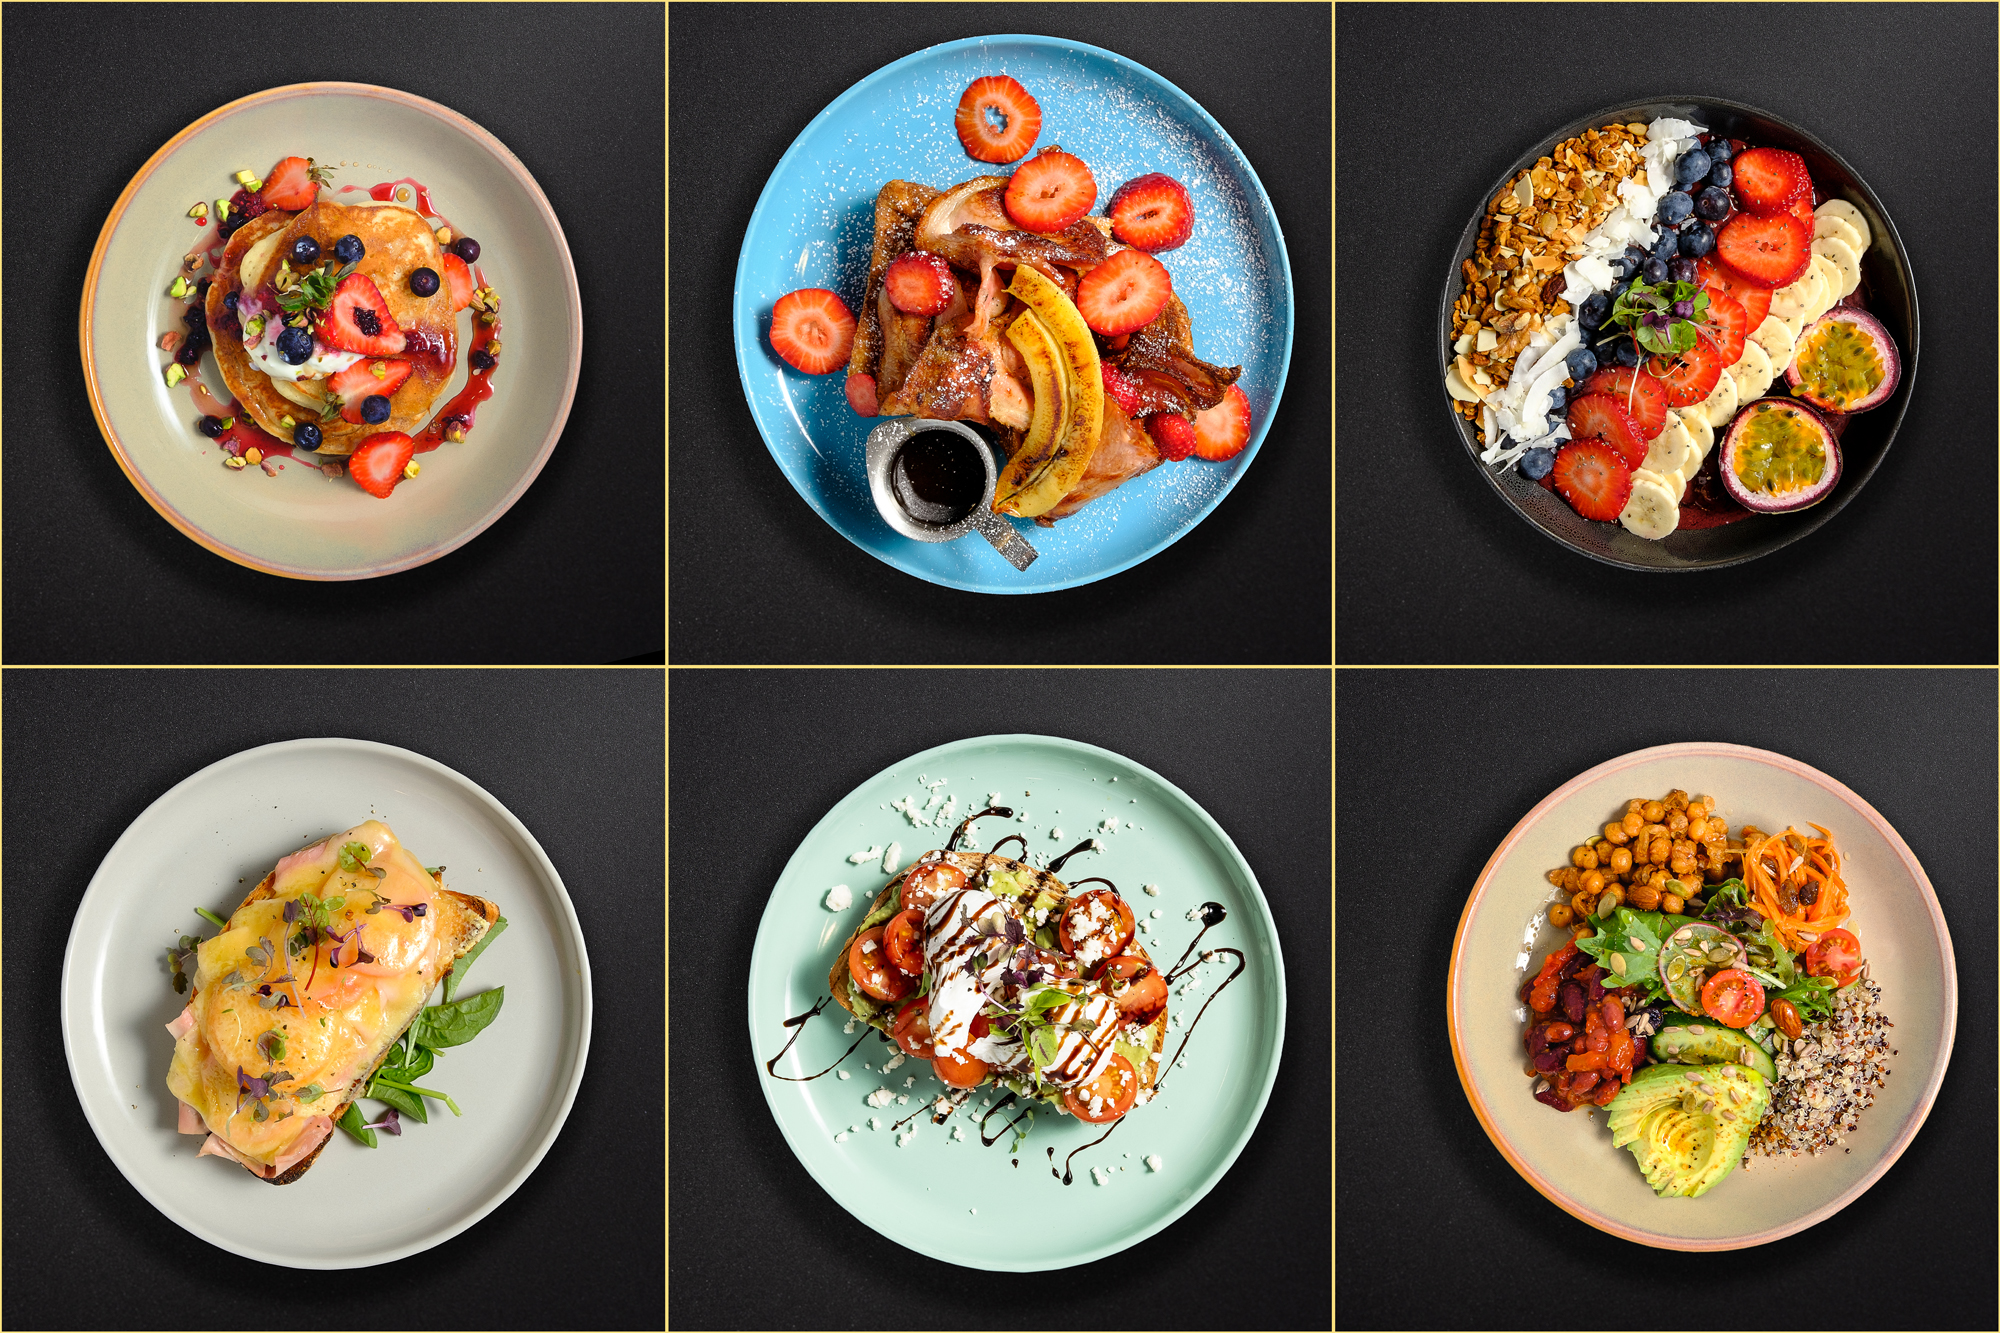 Food Photography for Cafe Els and Wollongong Cafe individle dishes on a black table top